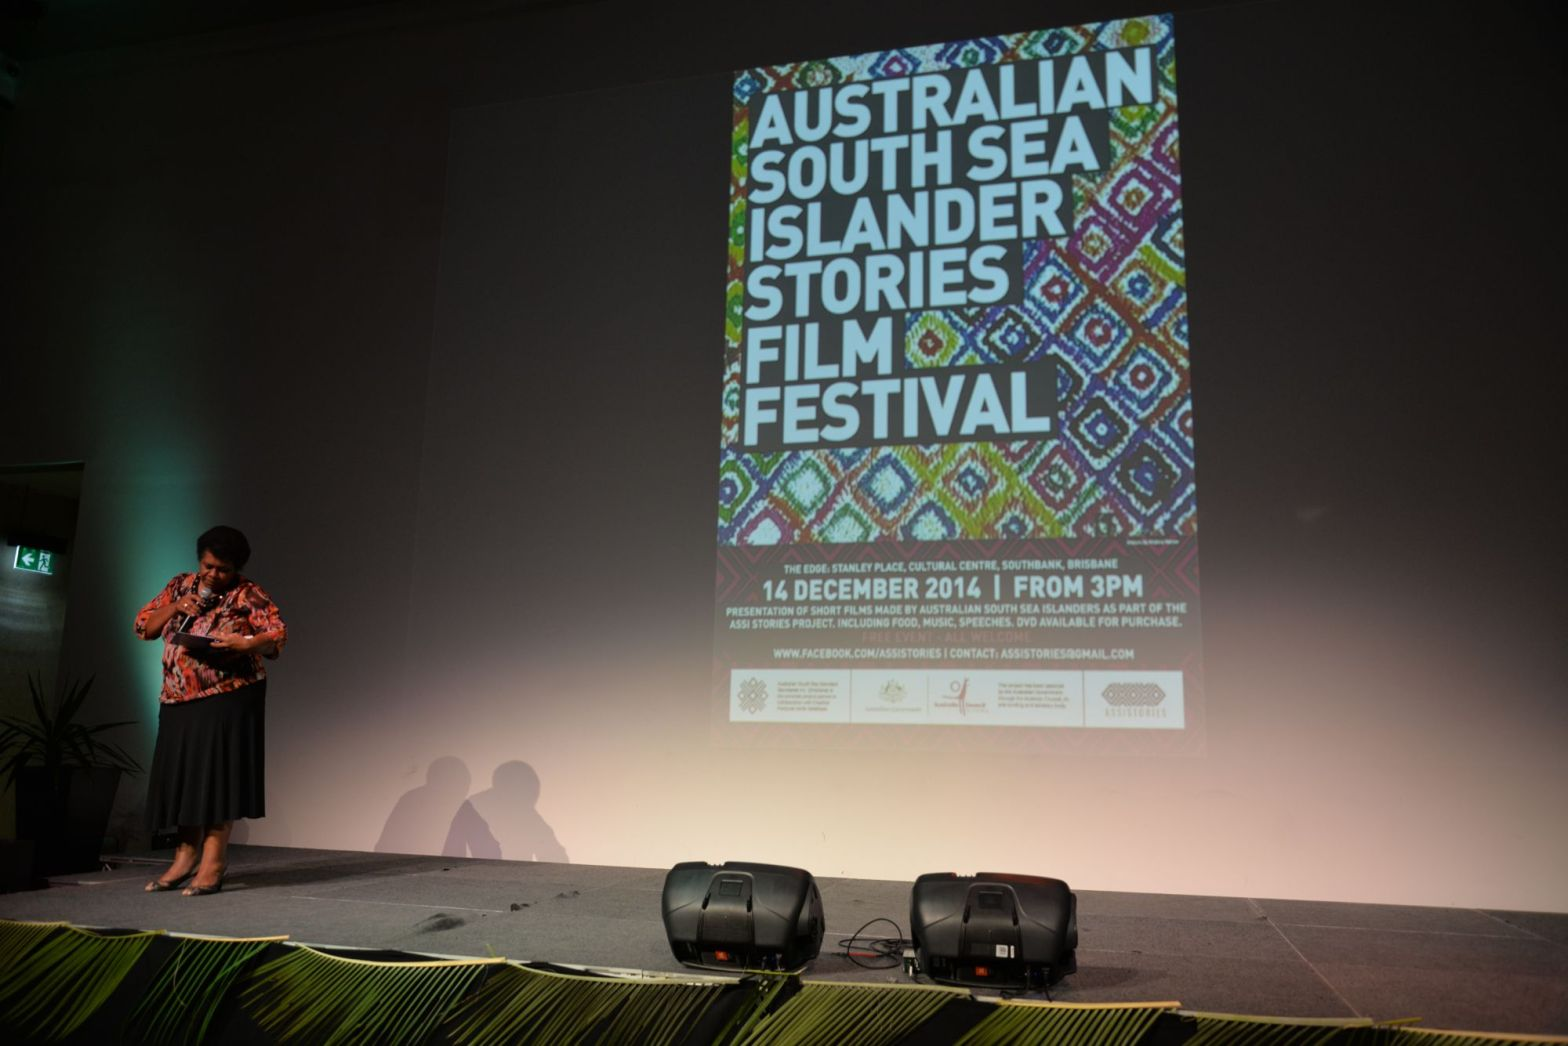 Joanne Warkill presents her speech at the ASSI Stories Film Festival 2014. Image by Jo-Anne Driessens